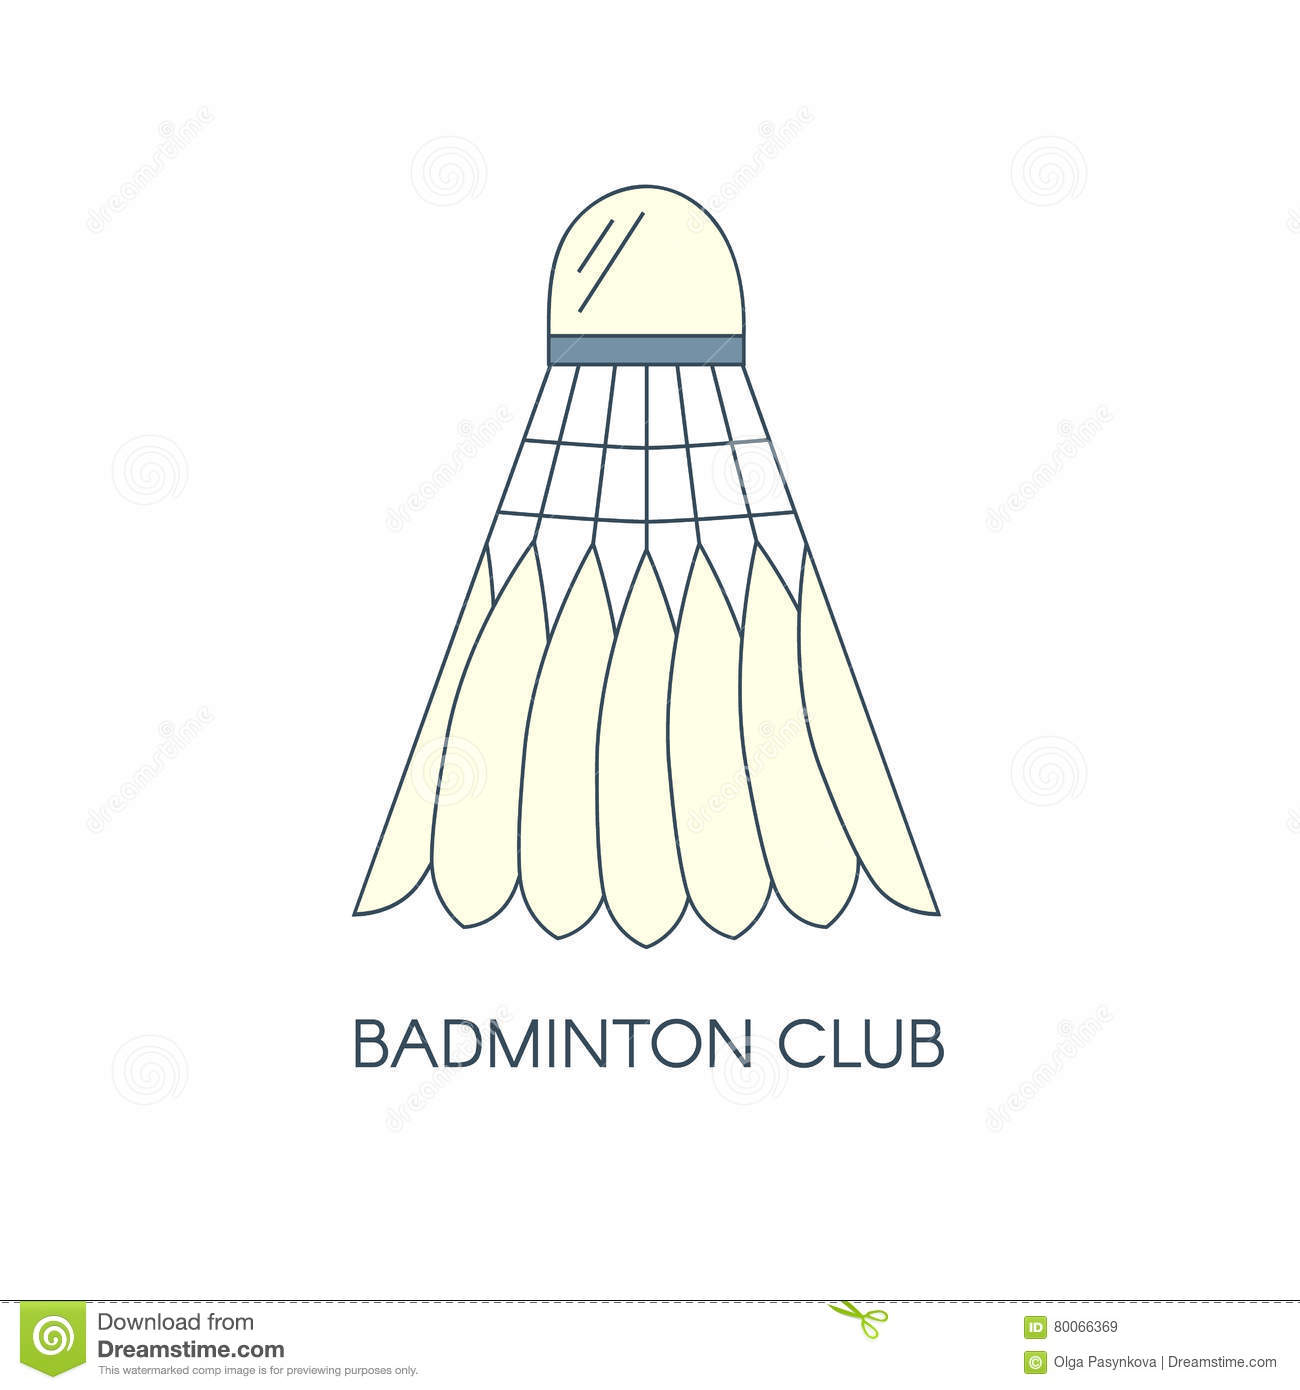 Badminton vector club logo stock vector image of indoor 47084353 badminton feathered shuttlecock icon isolated creative logo template for badminton club vector linear xflitez Image collections